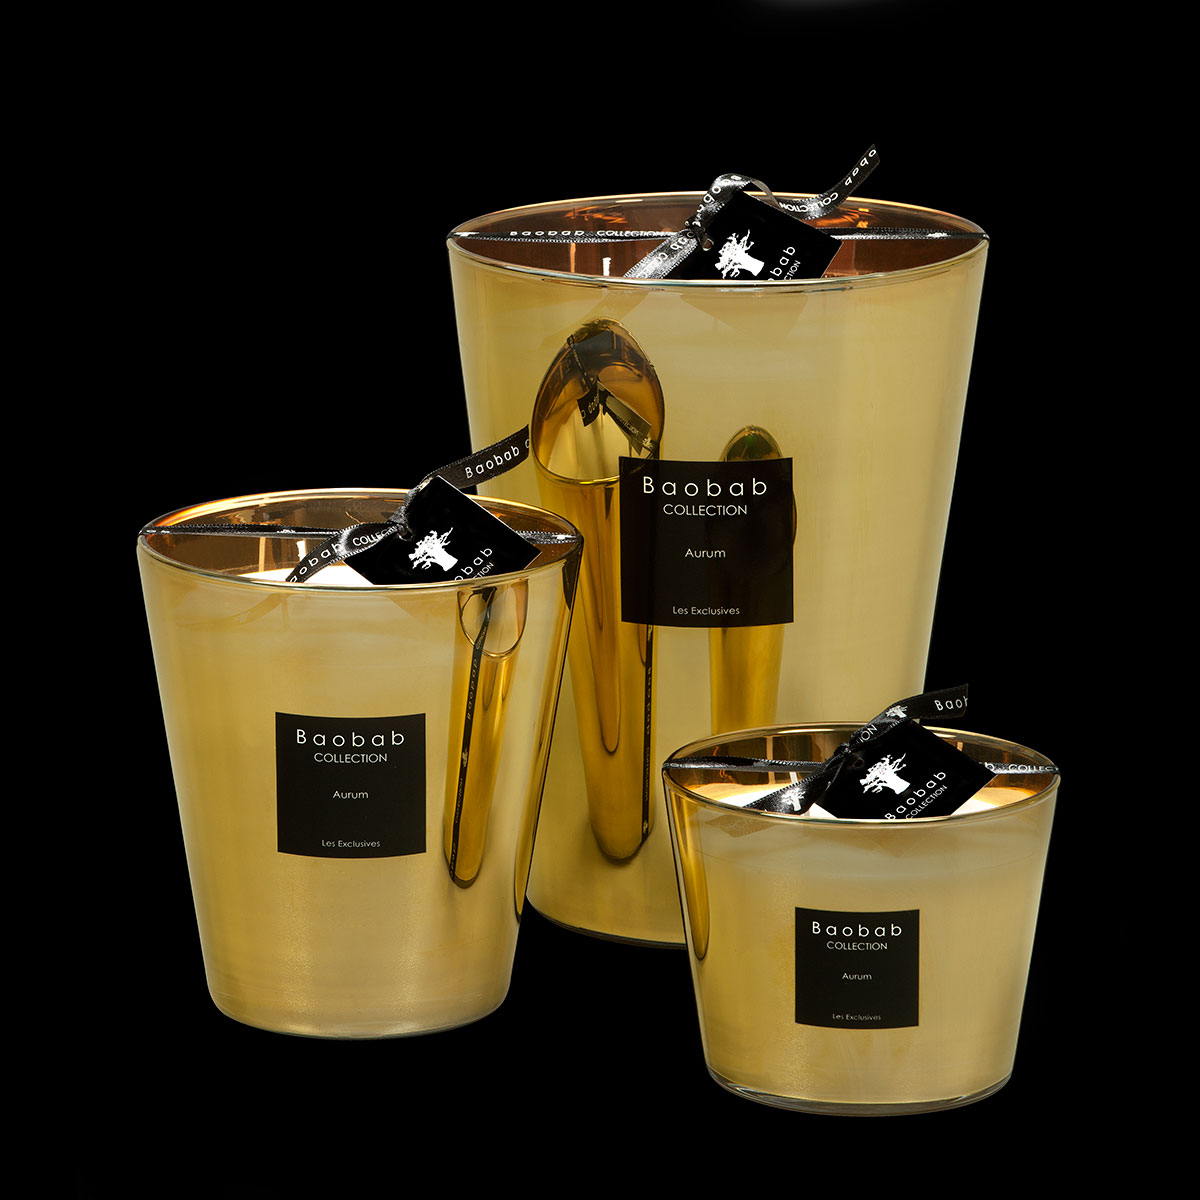 baobab collection aurum gold candle design oostende. Black Bedroom Furniture Sets. Home Design Ideas